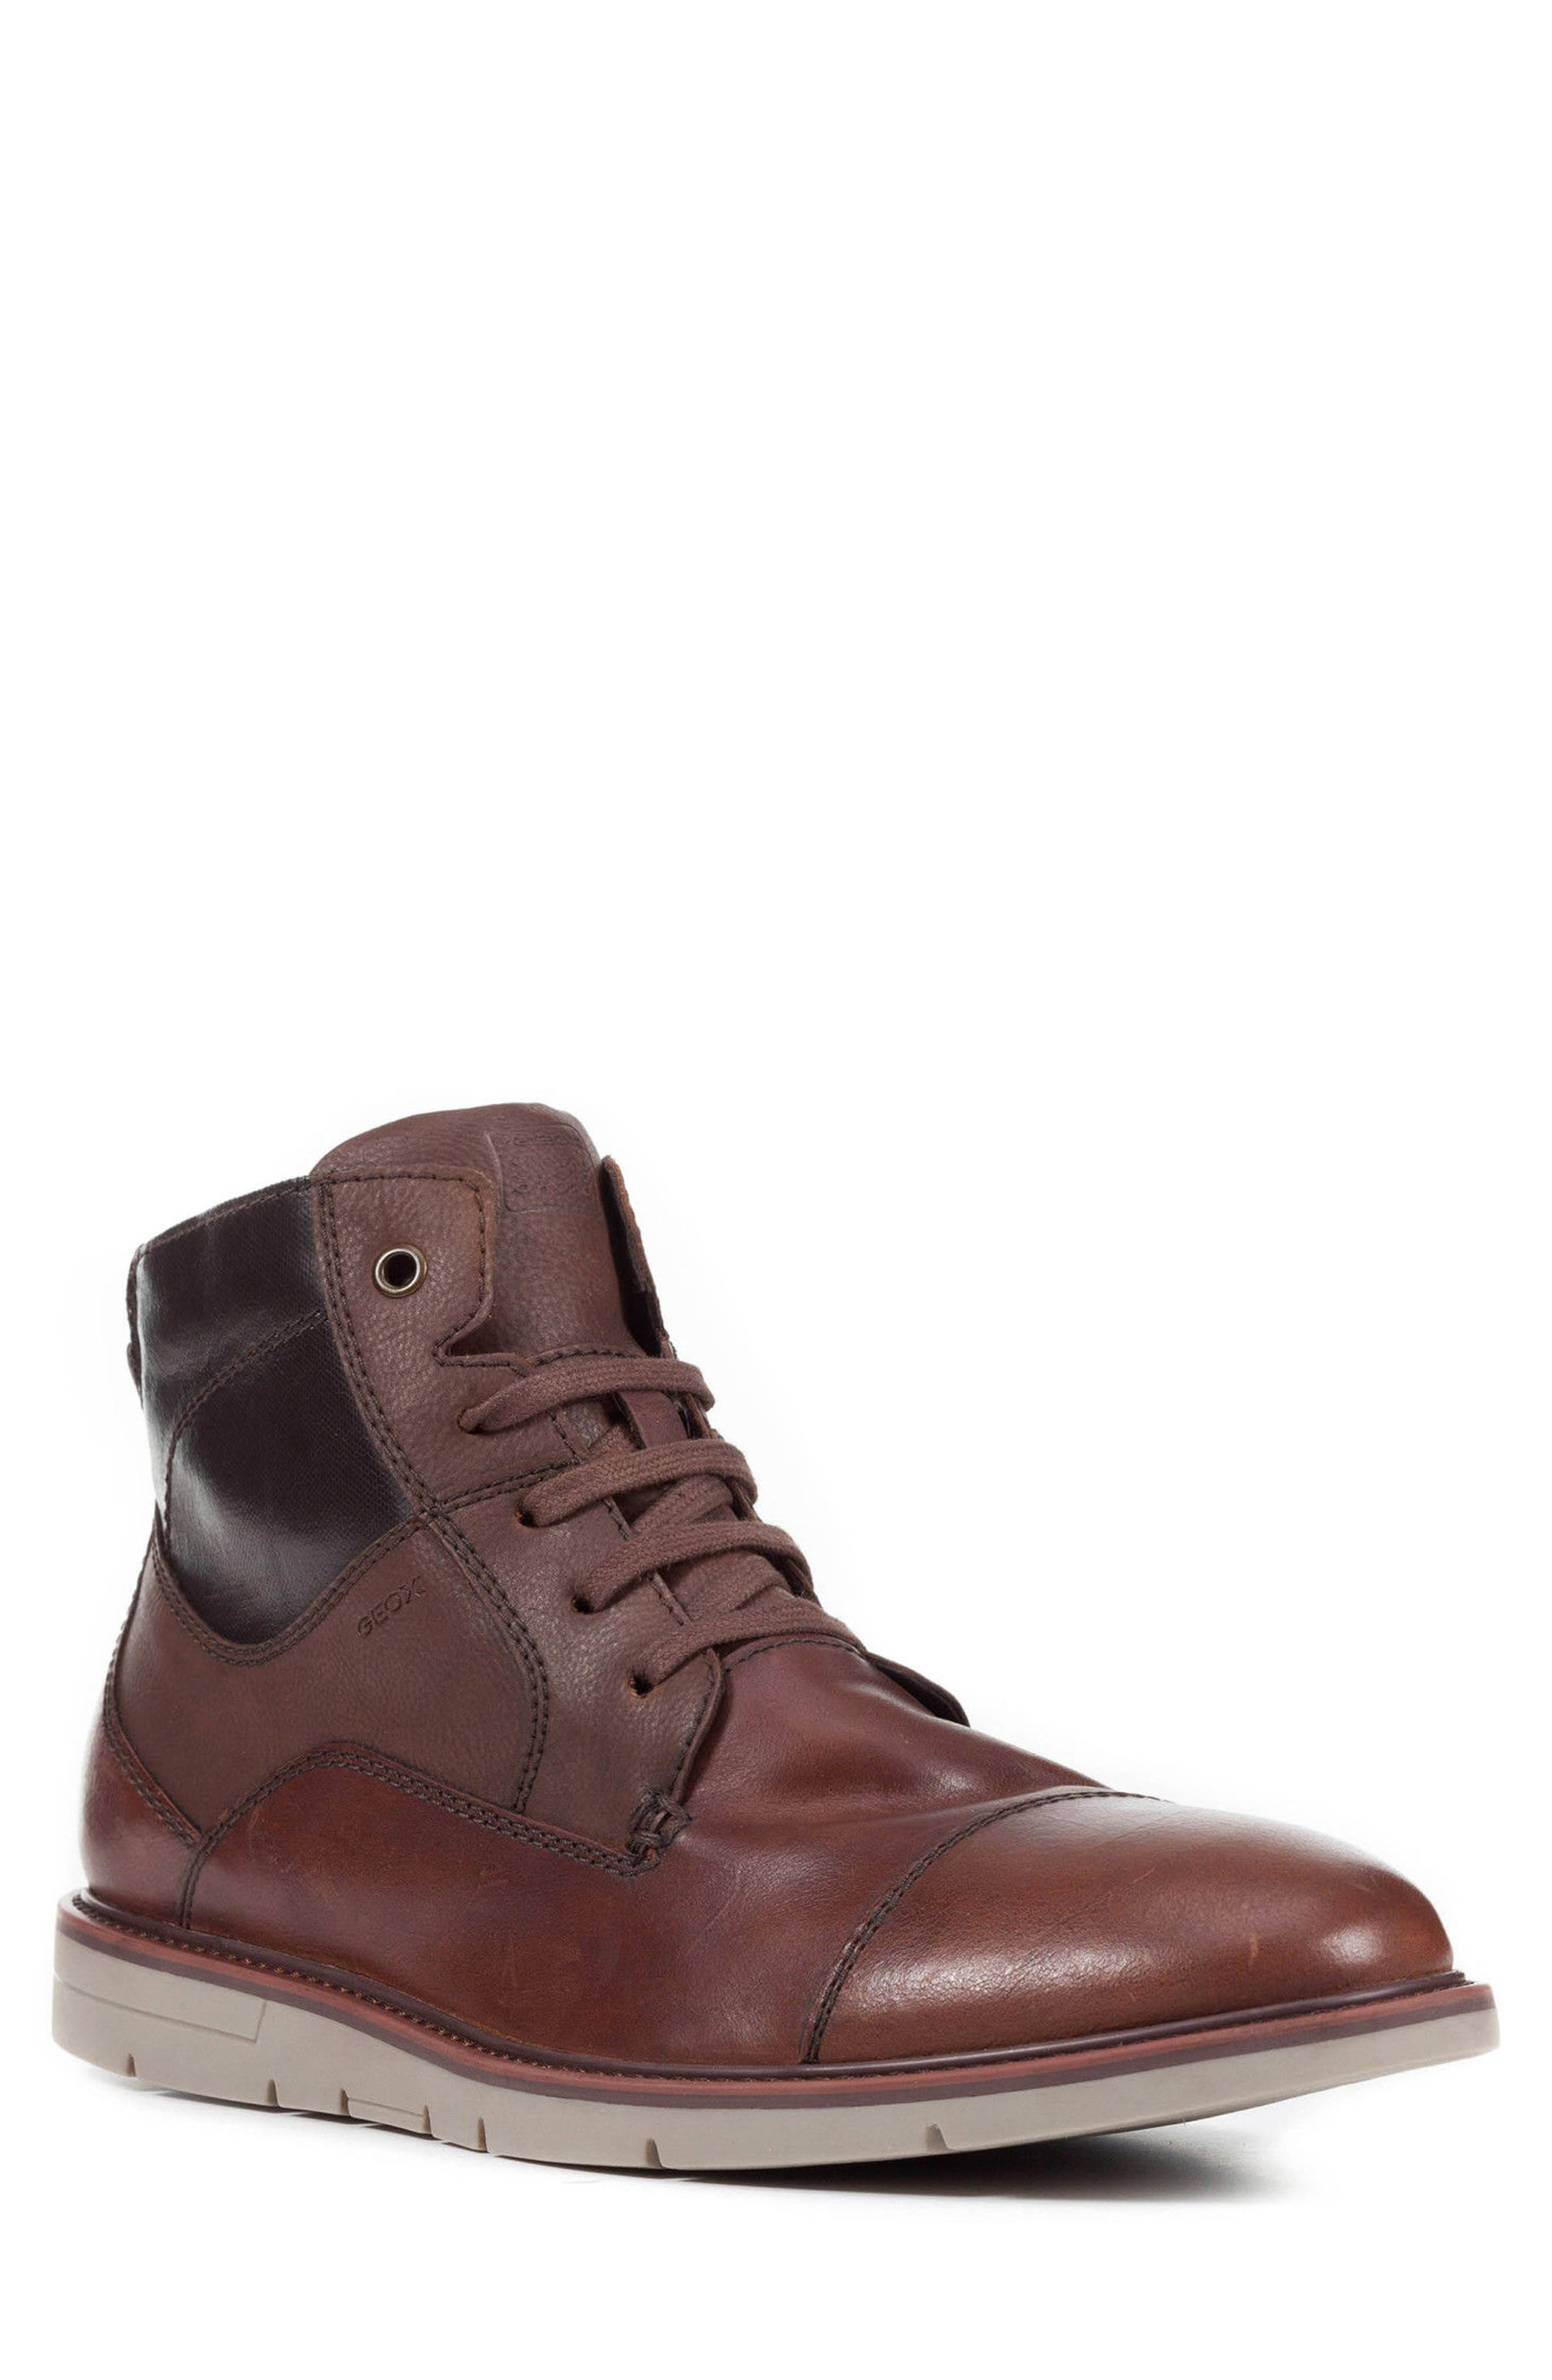 Alternate Image 1 Selected - Geox Muvet 5 Cap Toe Boot (men)